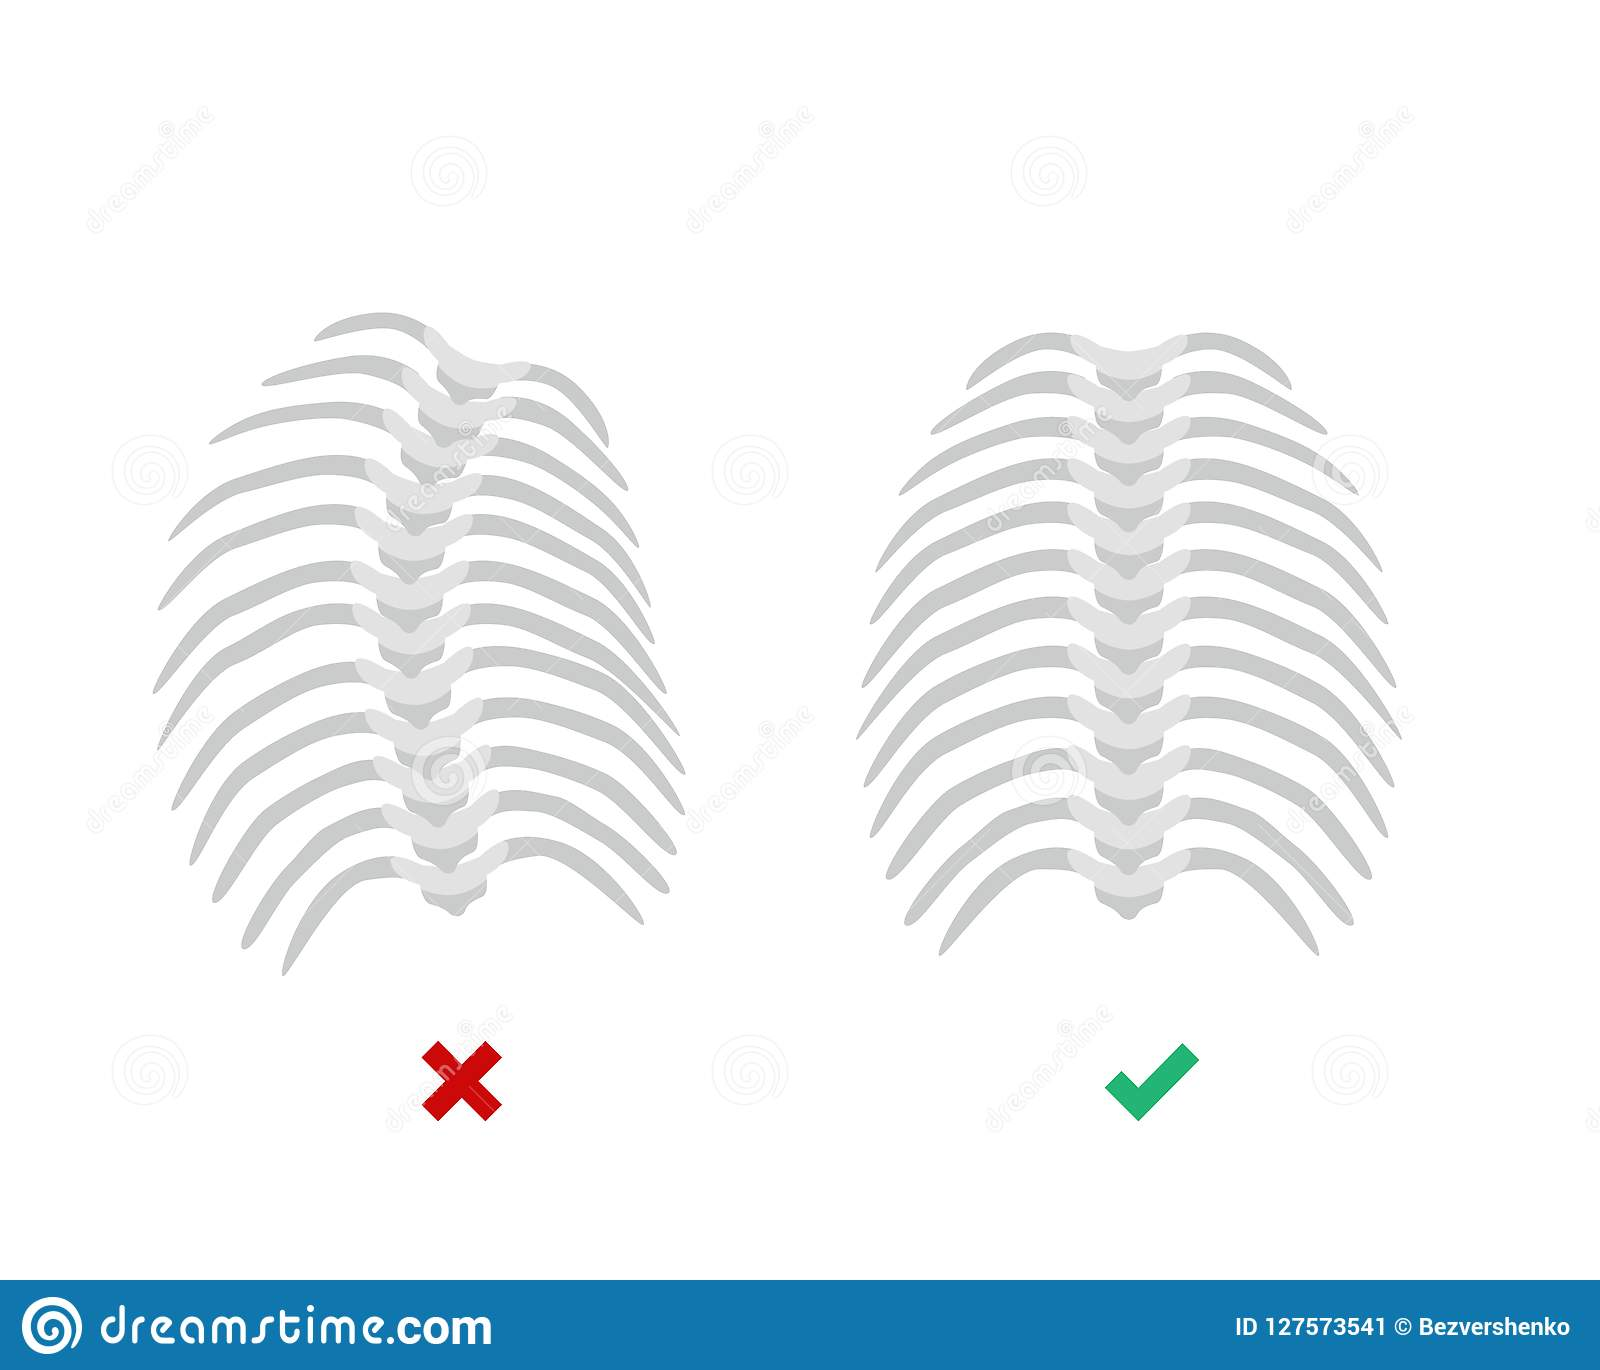 Thoracic Scoliosis on the thoracic spine and straight backbone concept vector illustration in flat design isolated on